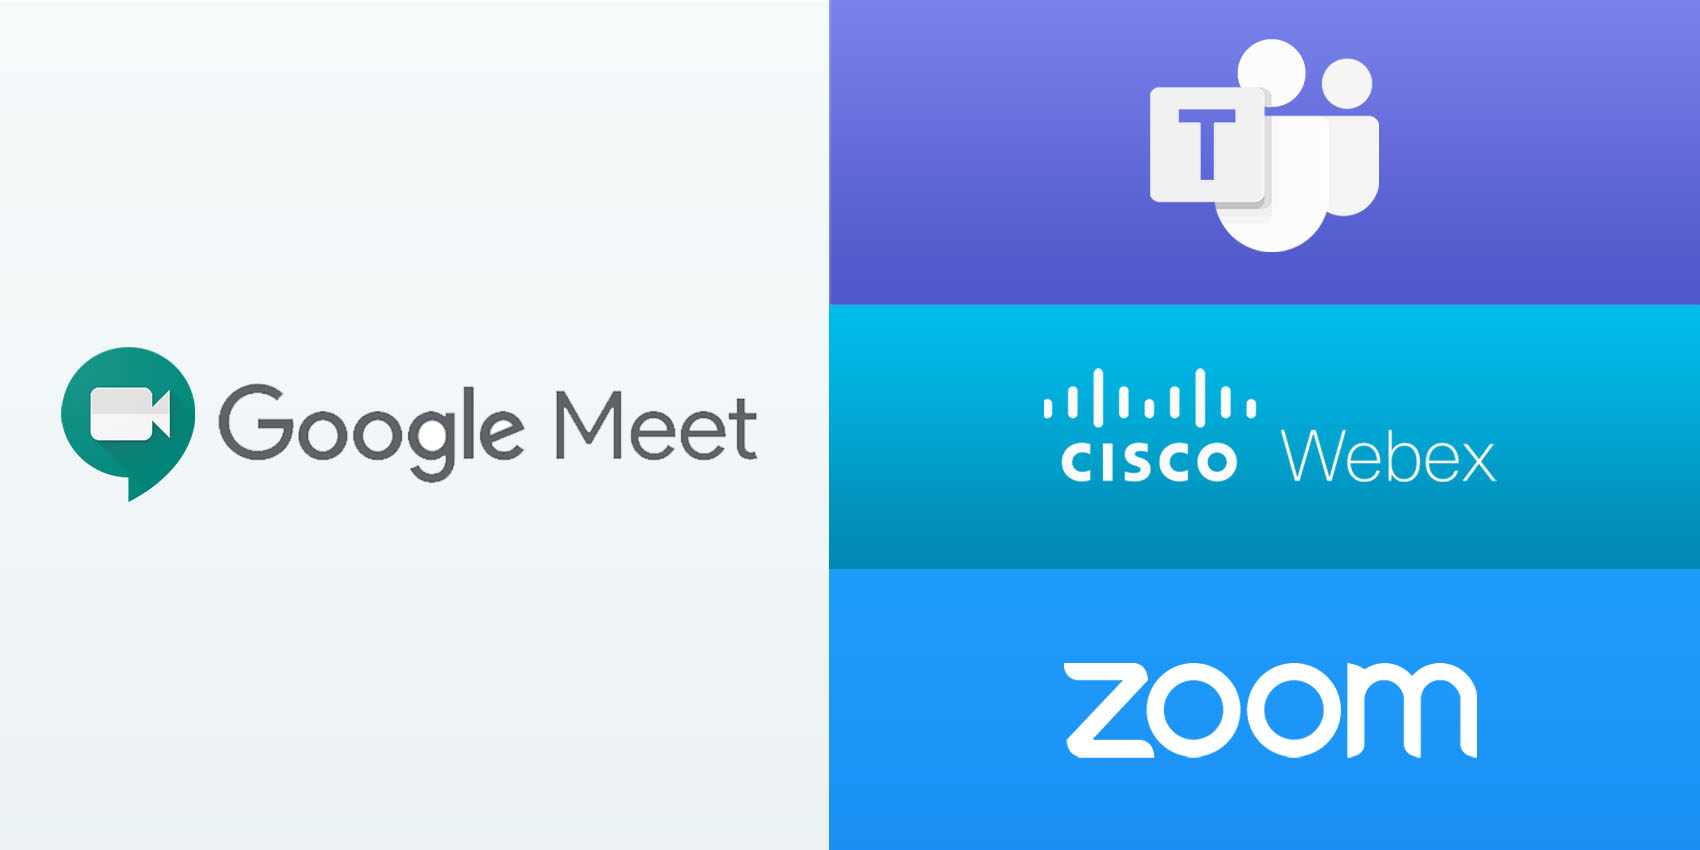 Searching for a Google Meet Alternative?